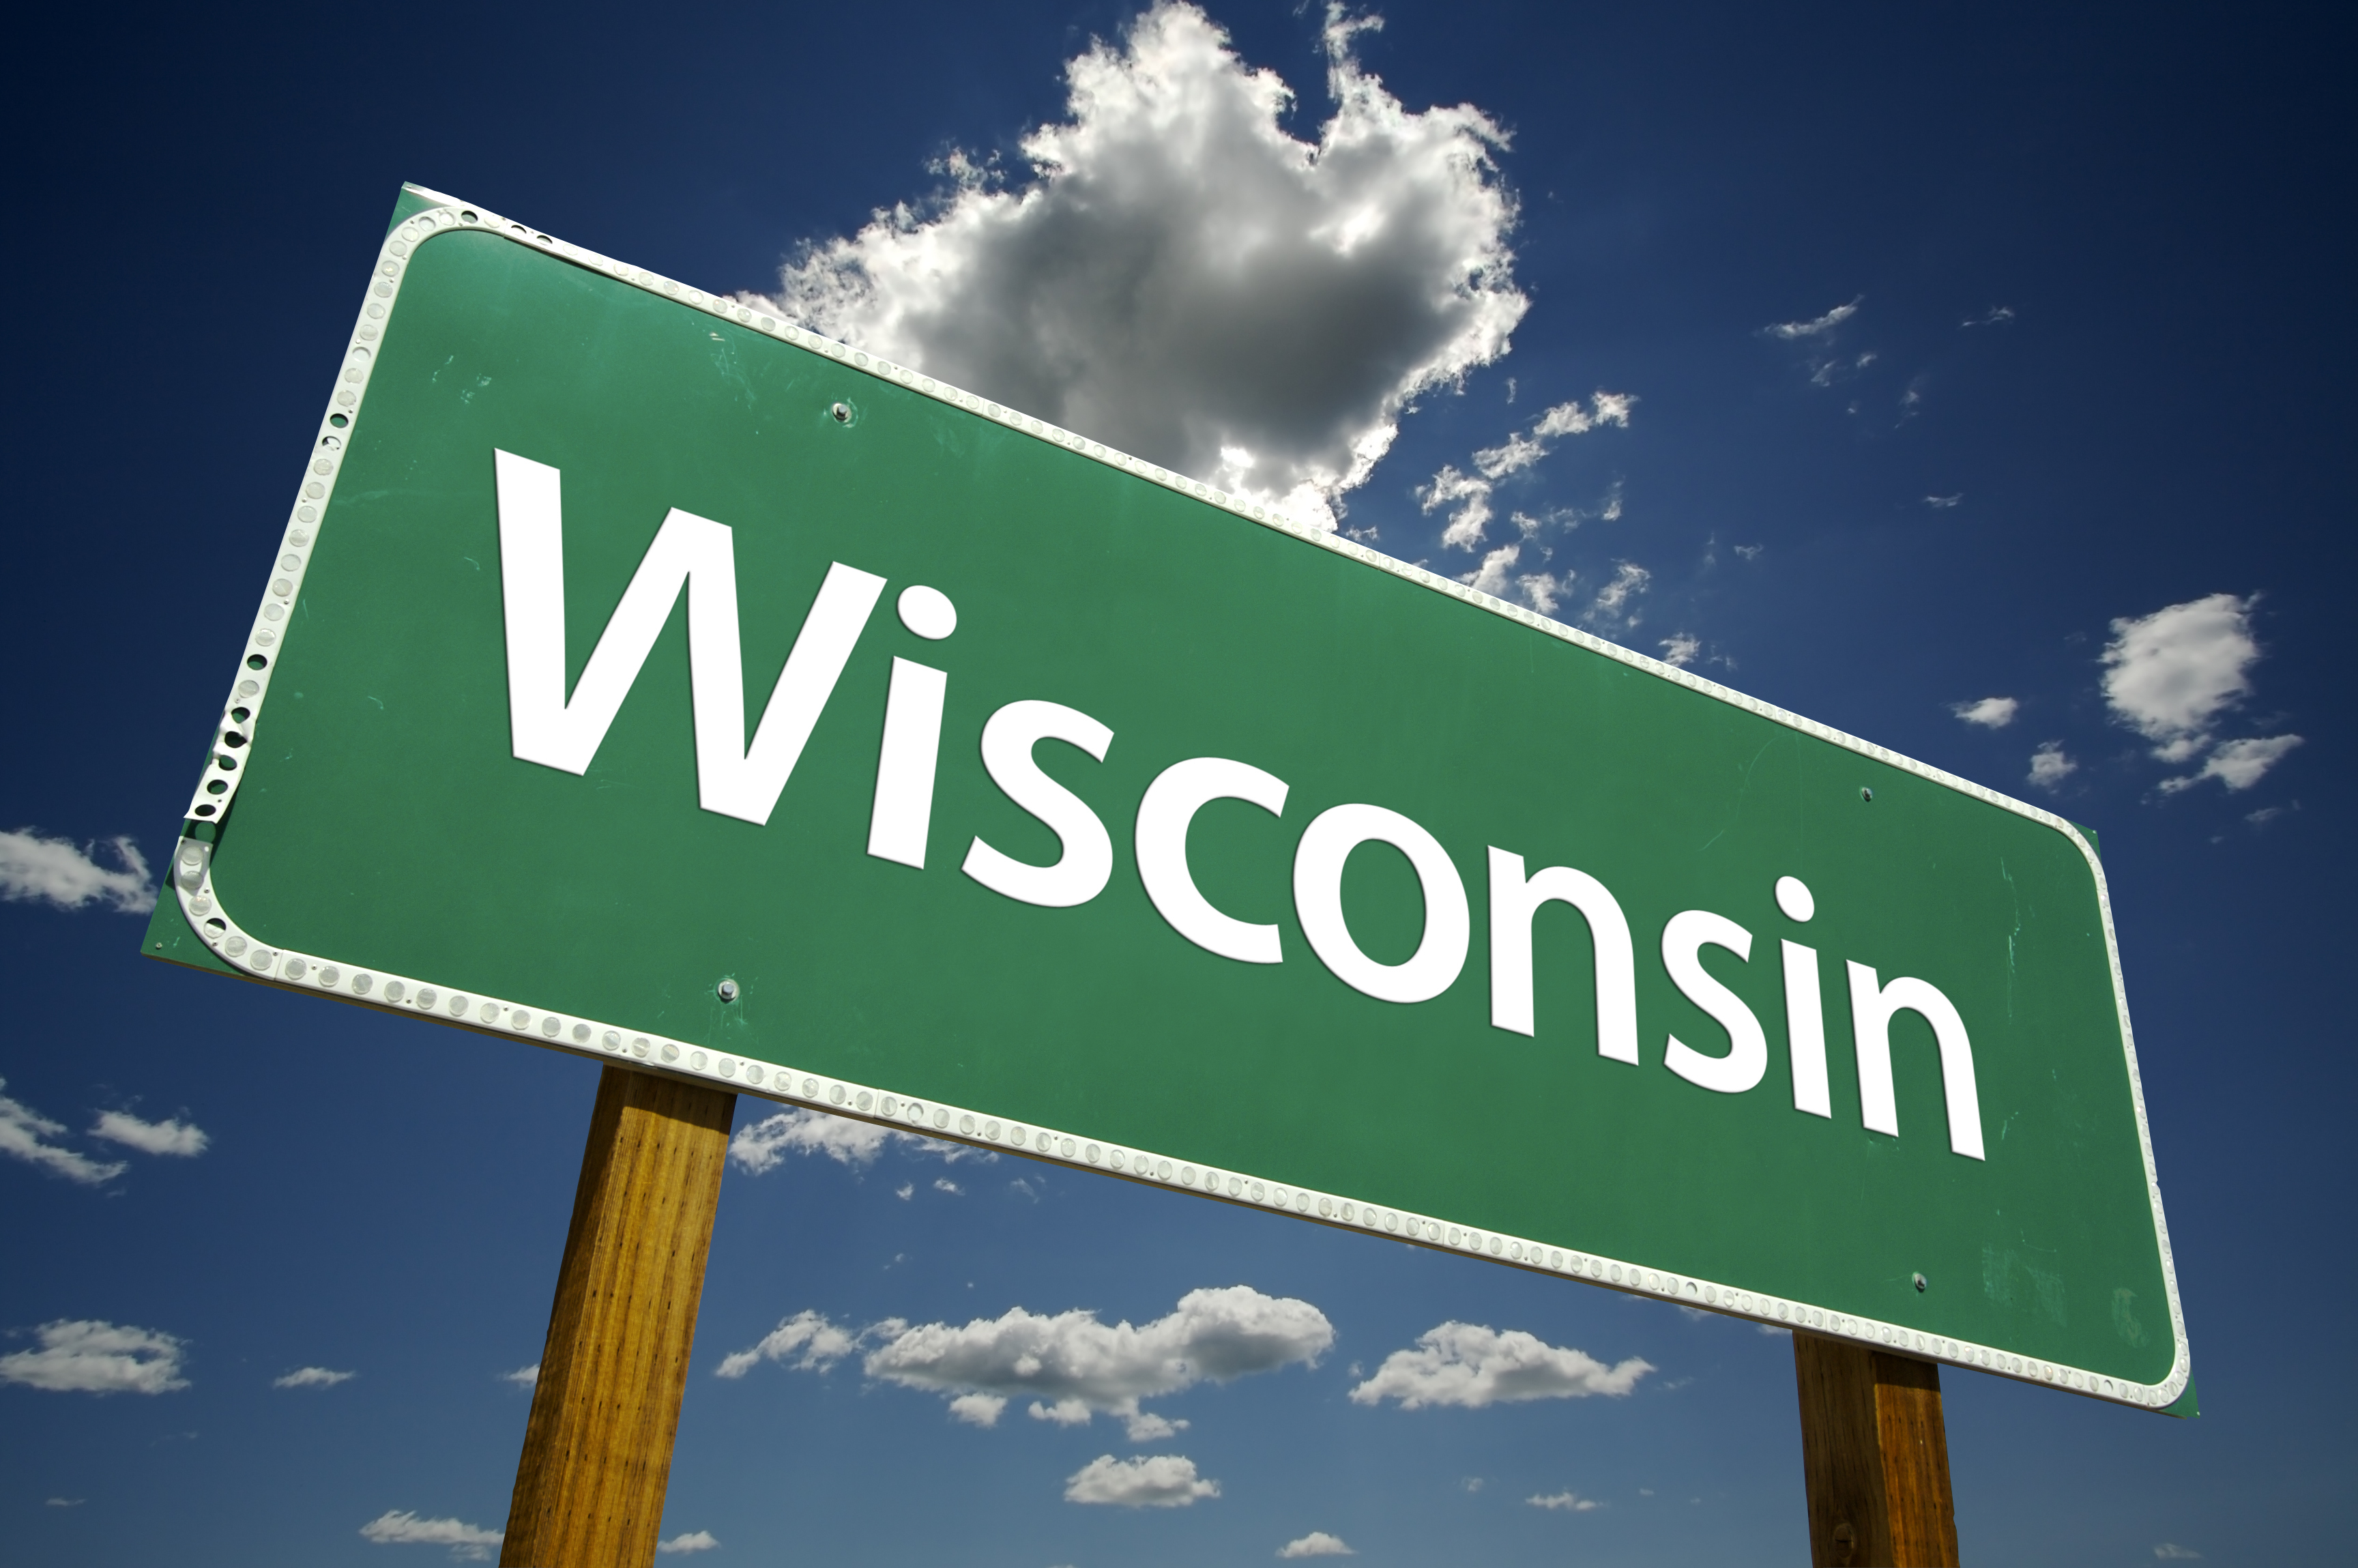 Road sign for Wisconsin | Hoof Zink, University Studies hoof rot on dairy cattle